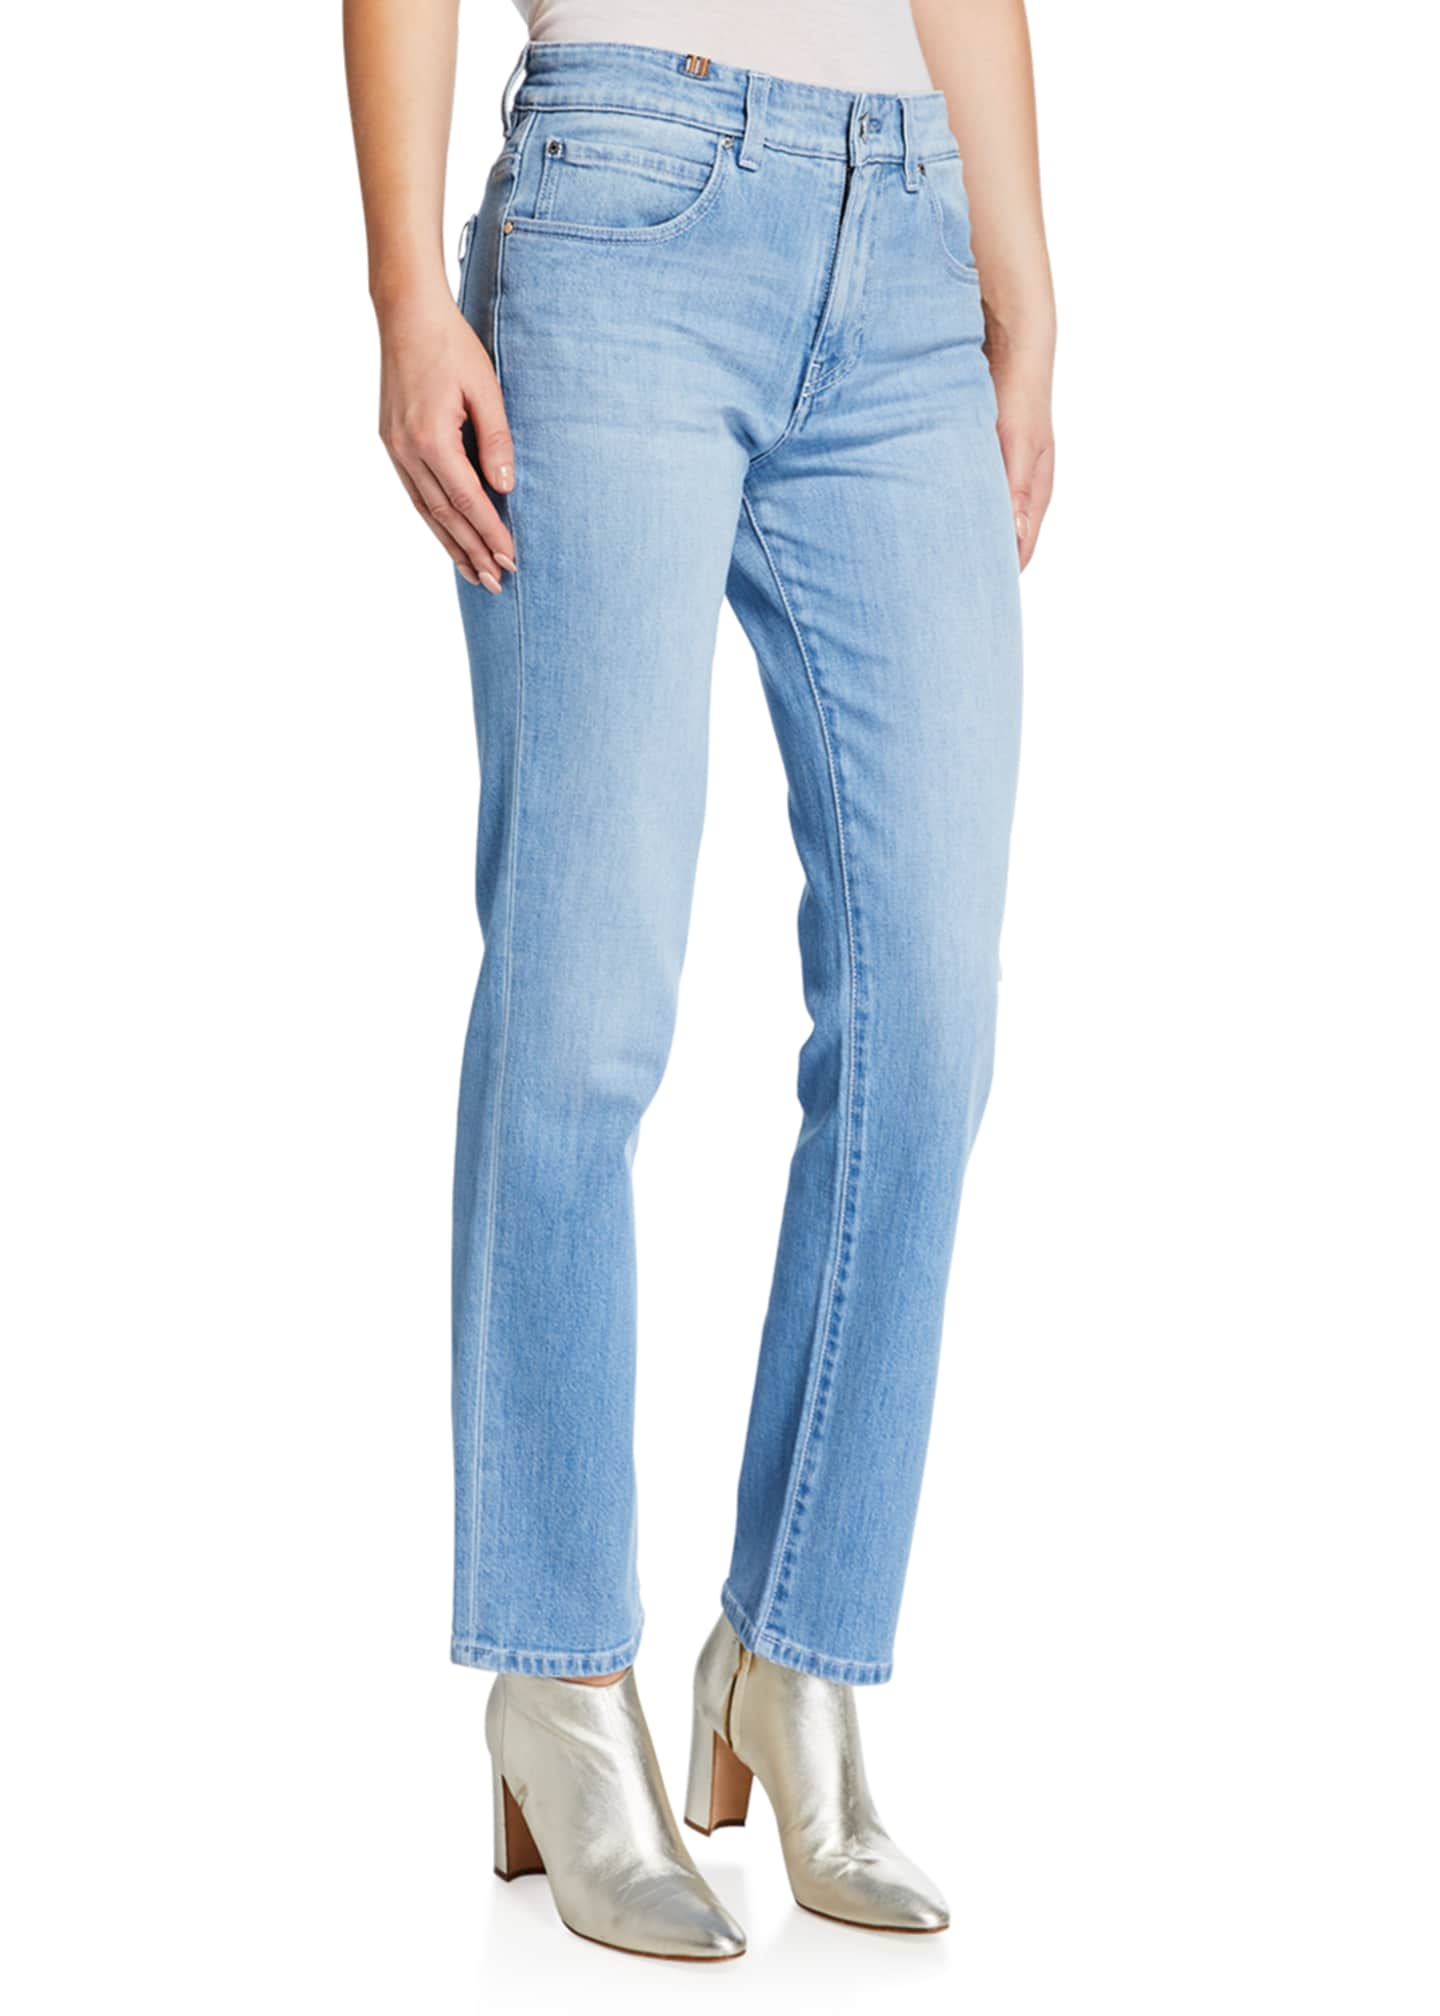 Atelier Notify Aloha Straight-Leg Ankle Jeans